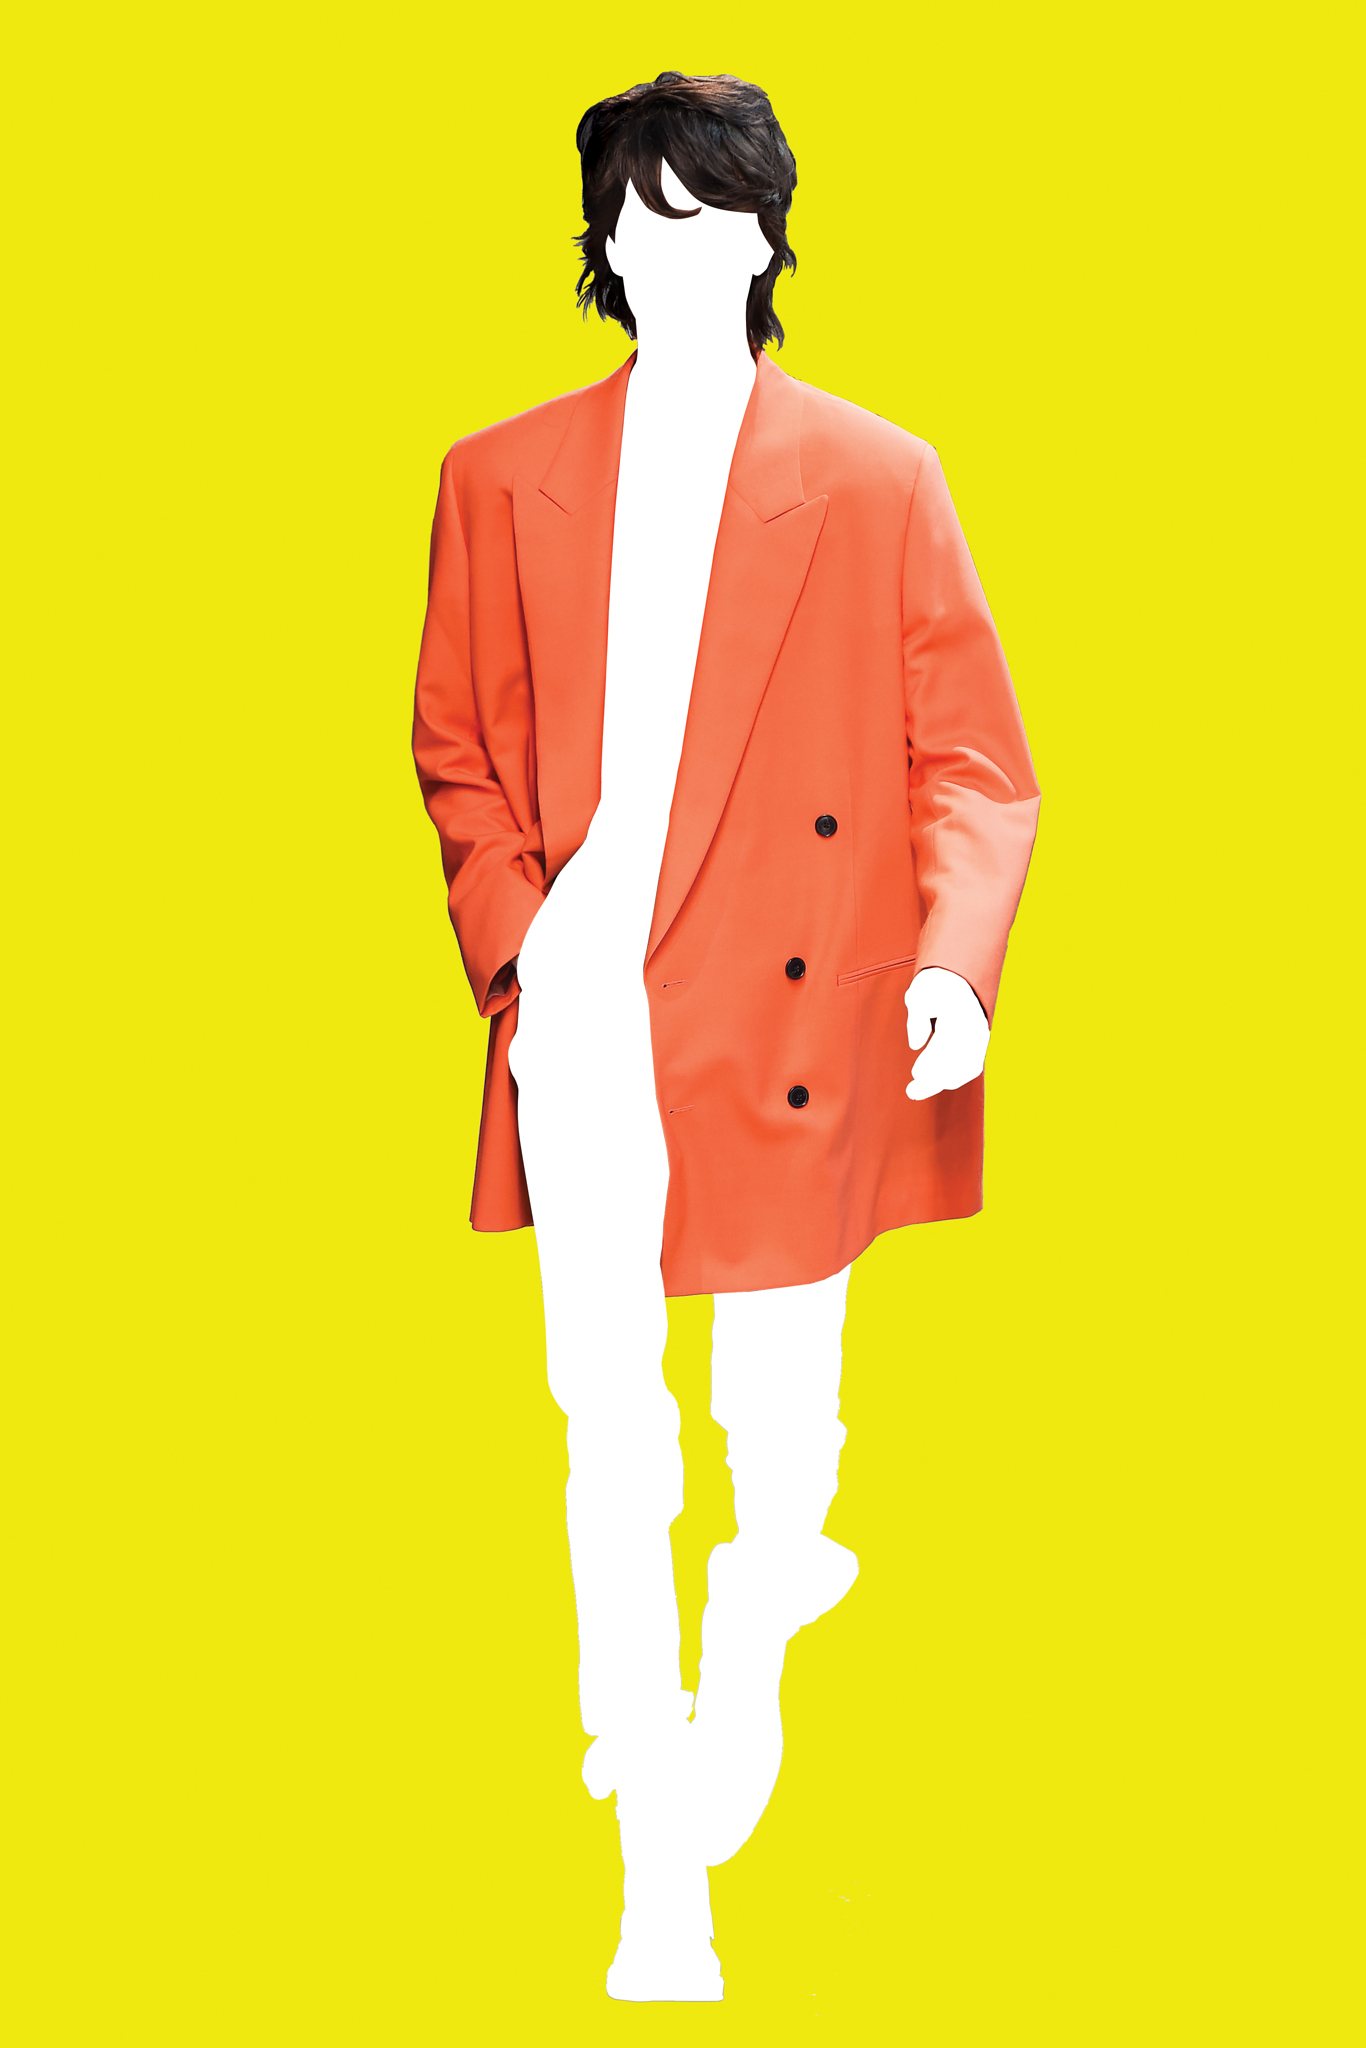 Illustration: Slouchy look from Paul Smith Spring 2016